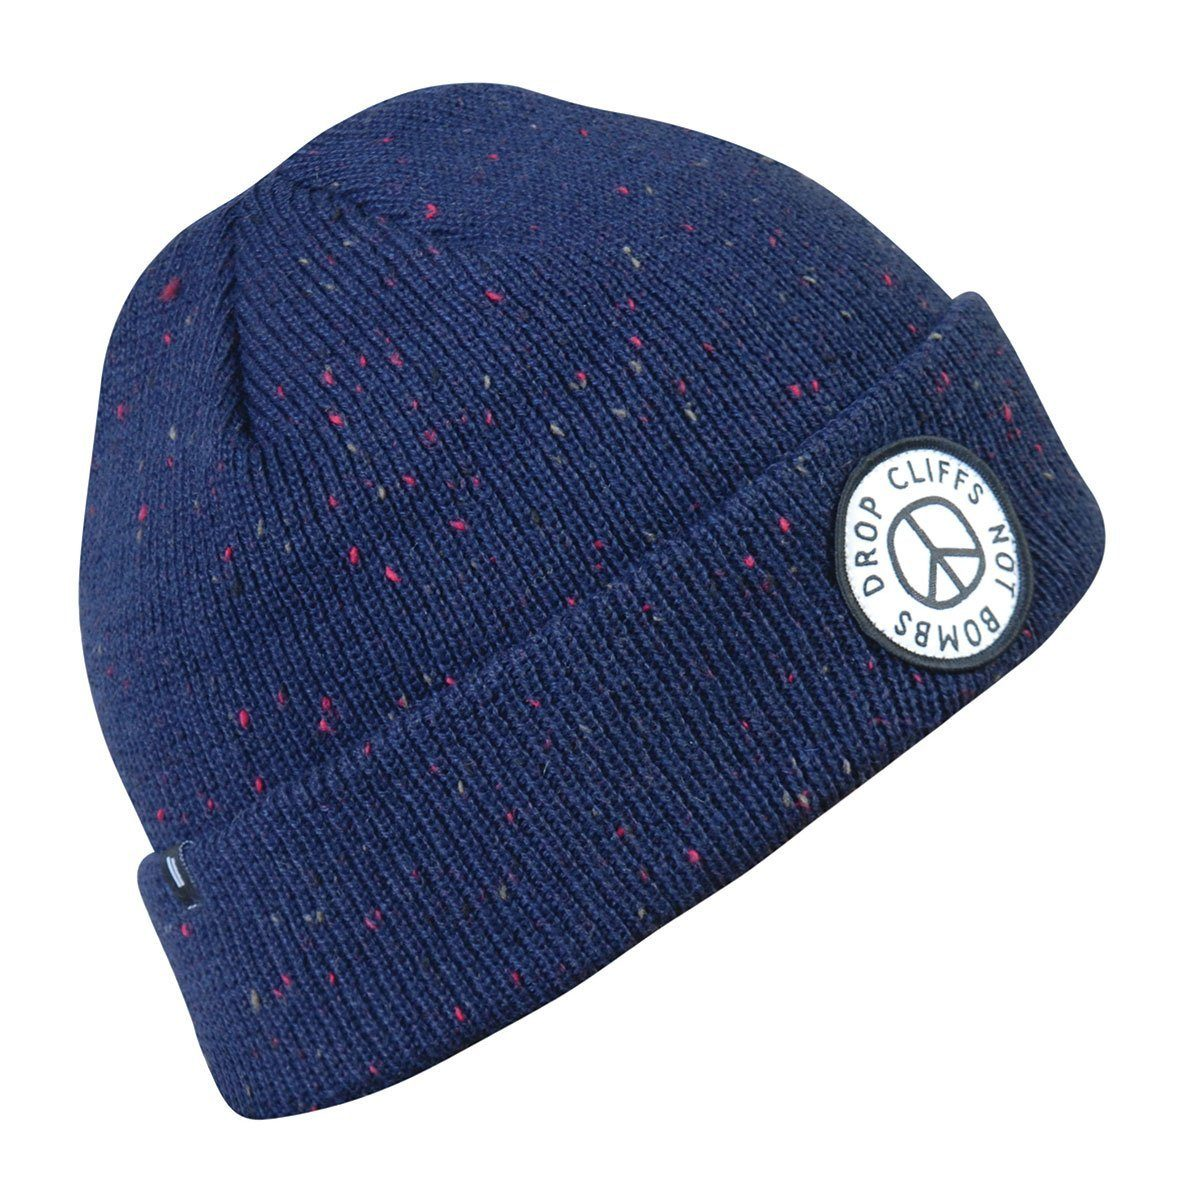 Planks Peace Beanie 2019 Dark Navy Dark Navy AHE-PEACE908